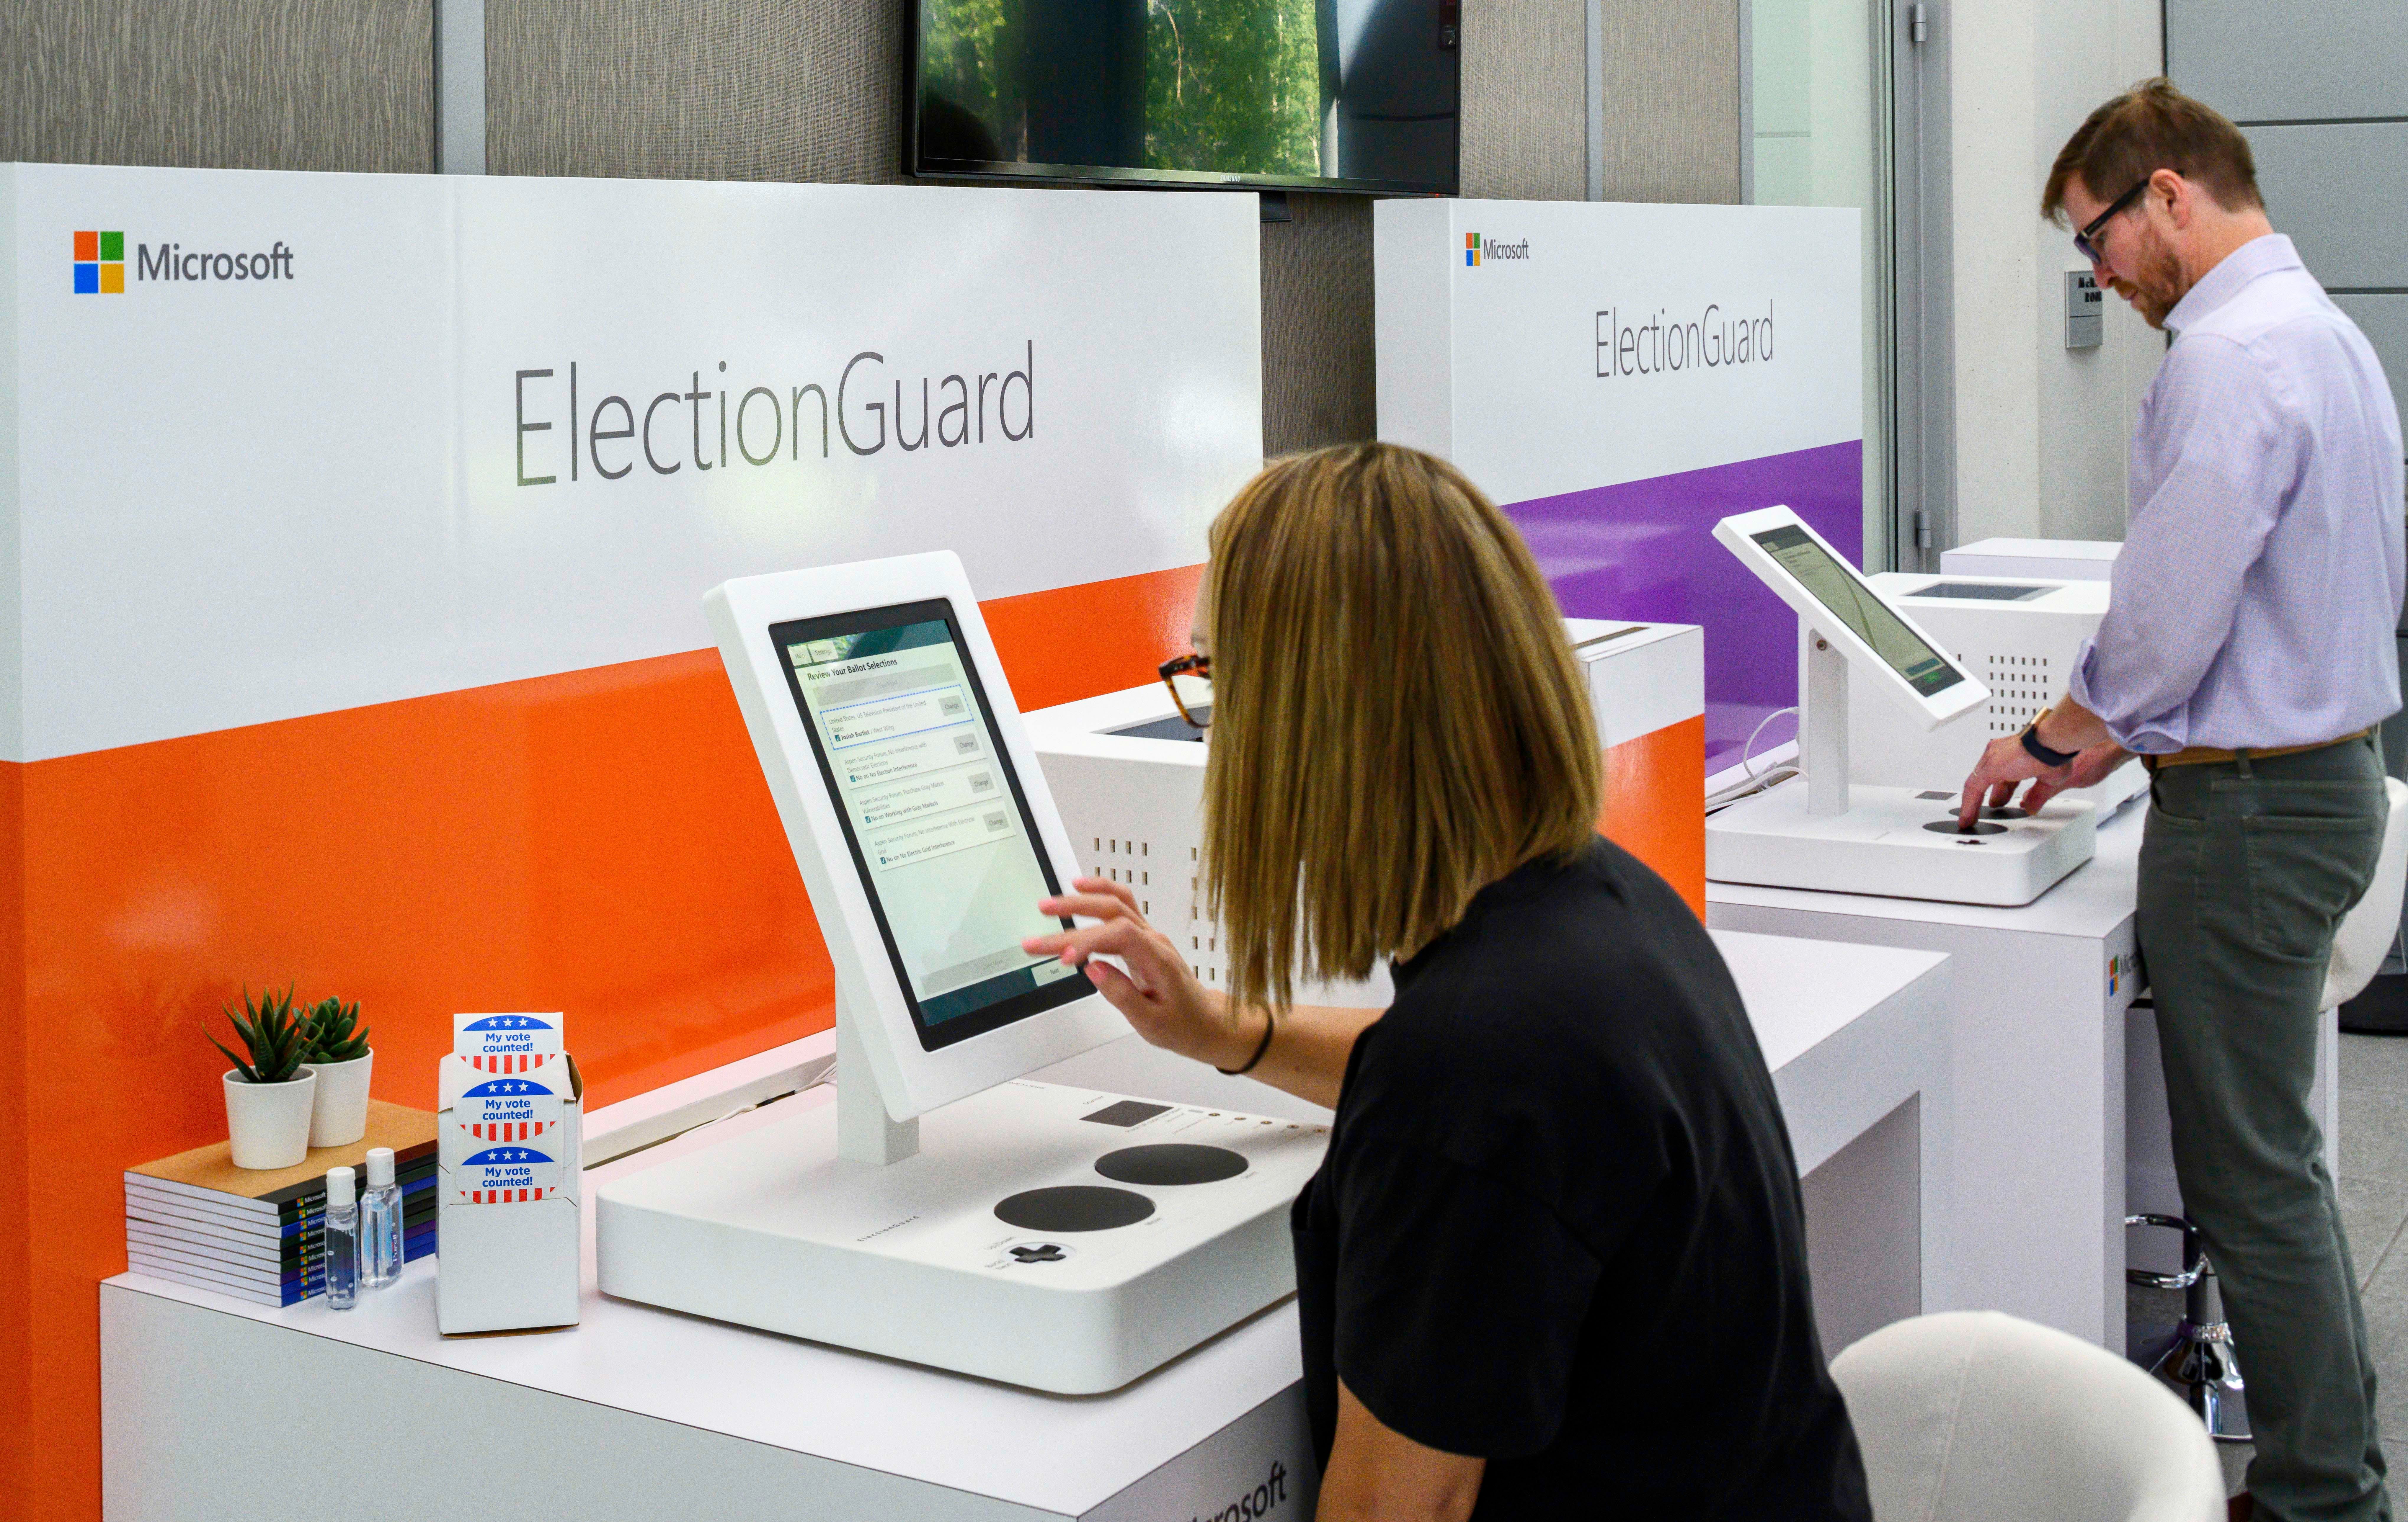 Microsoft demos its ElectionGuard software designed to block hackers